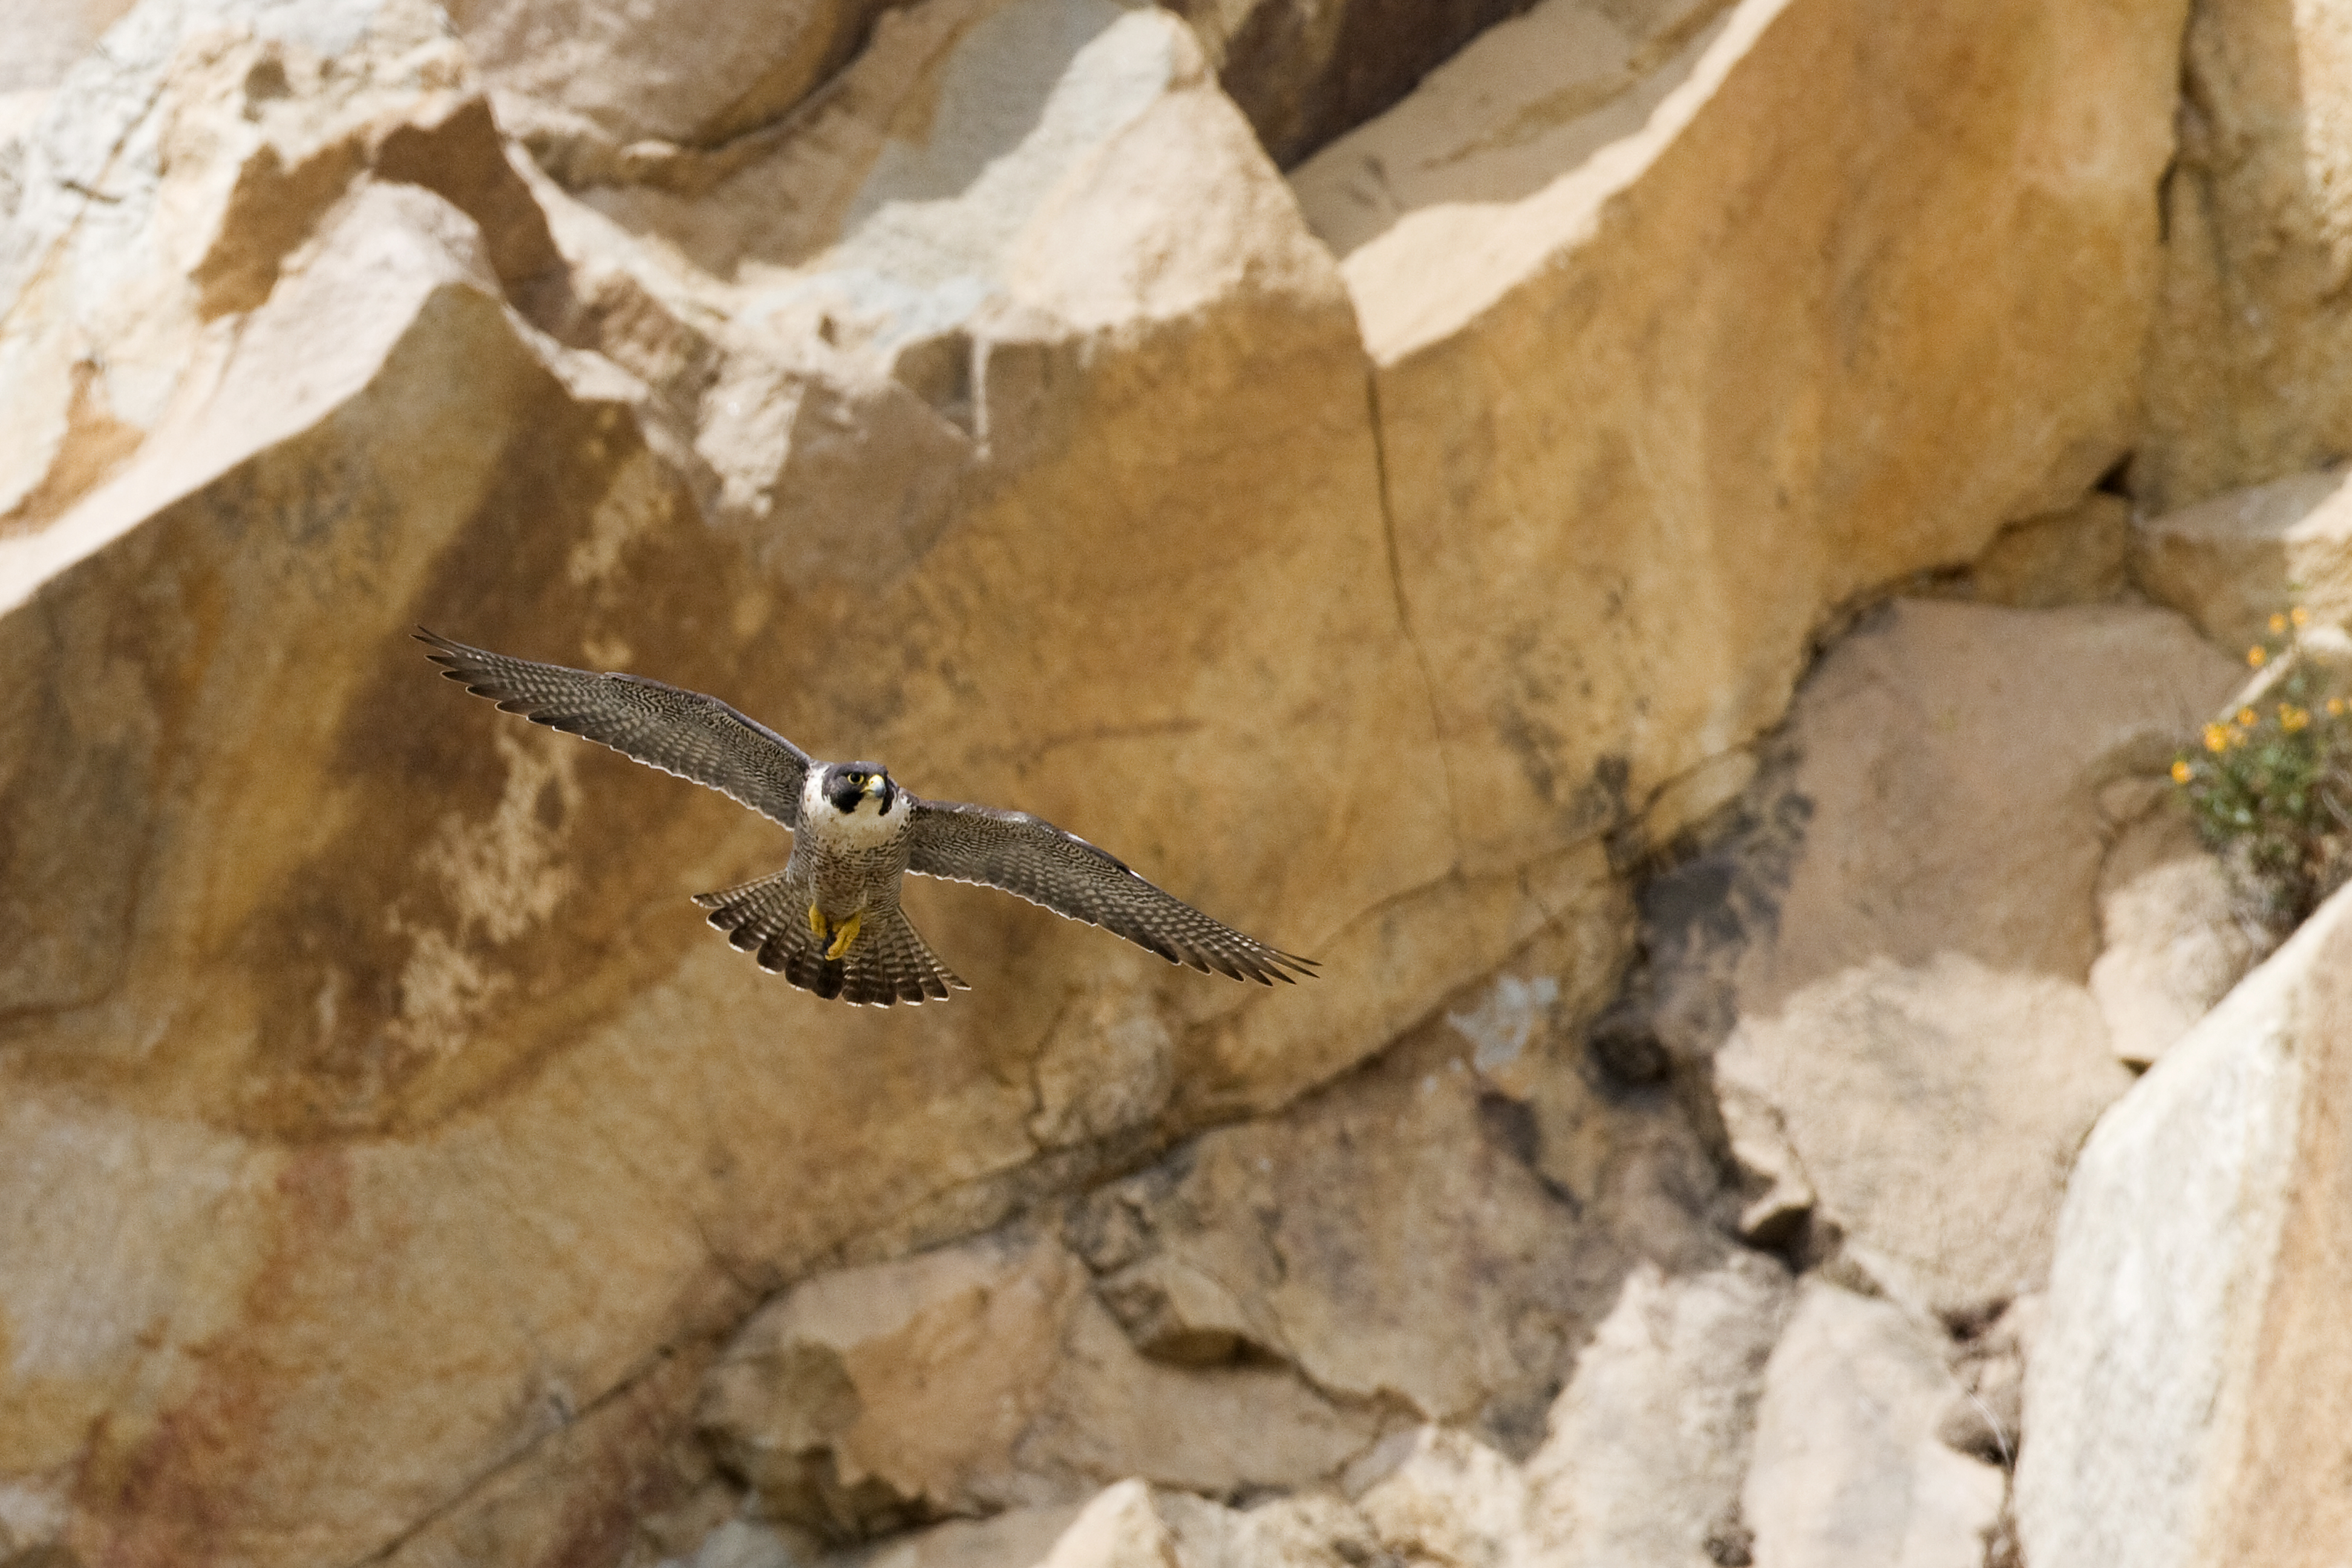 http://upload.wikimedia.org/wikipedia/commons/1/1e/Peregrine_Falcon_in_flight.jpg